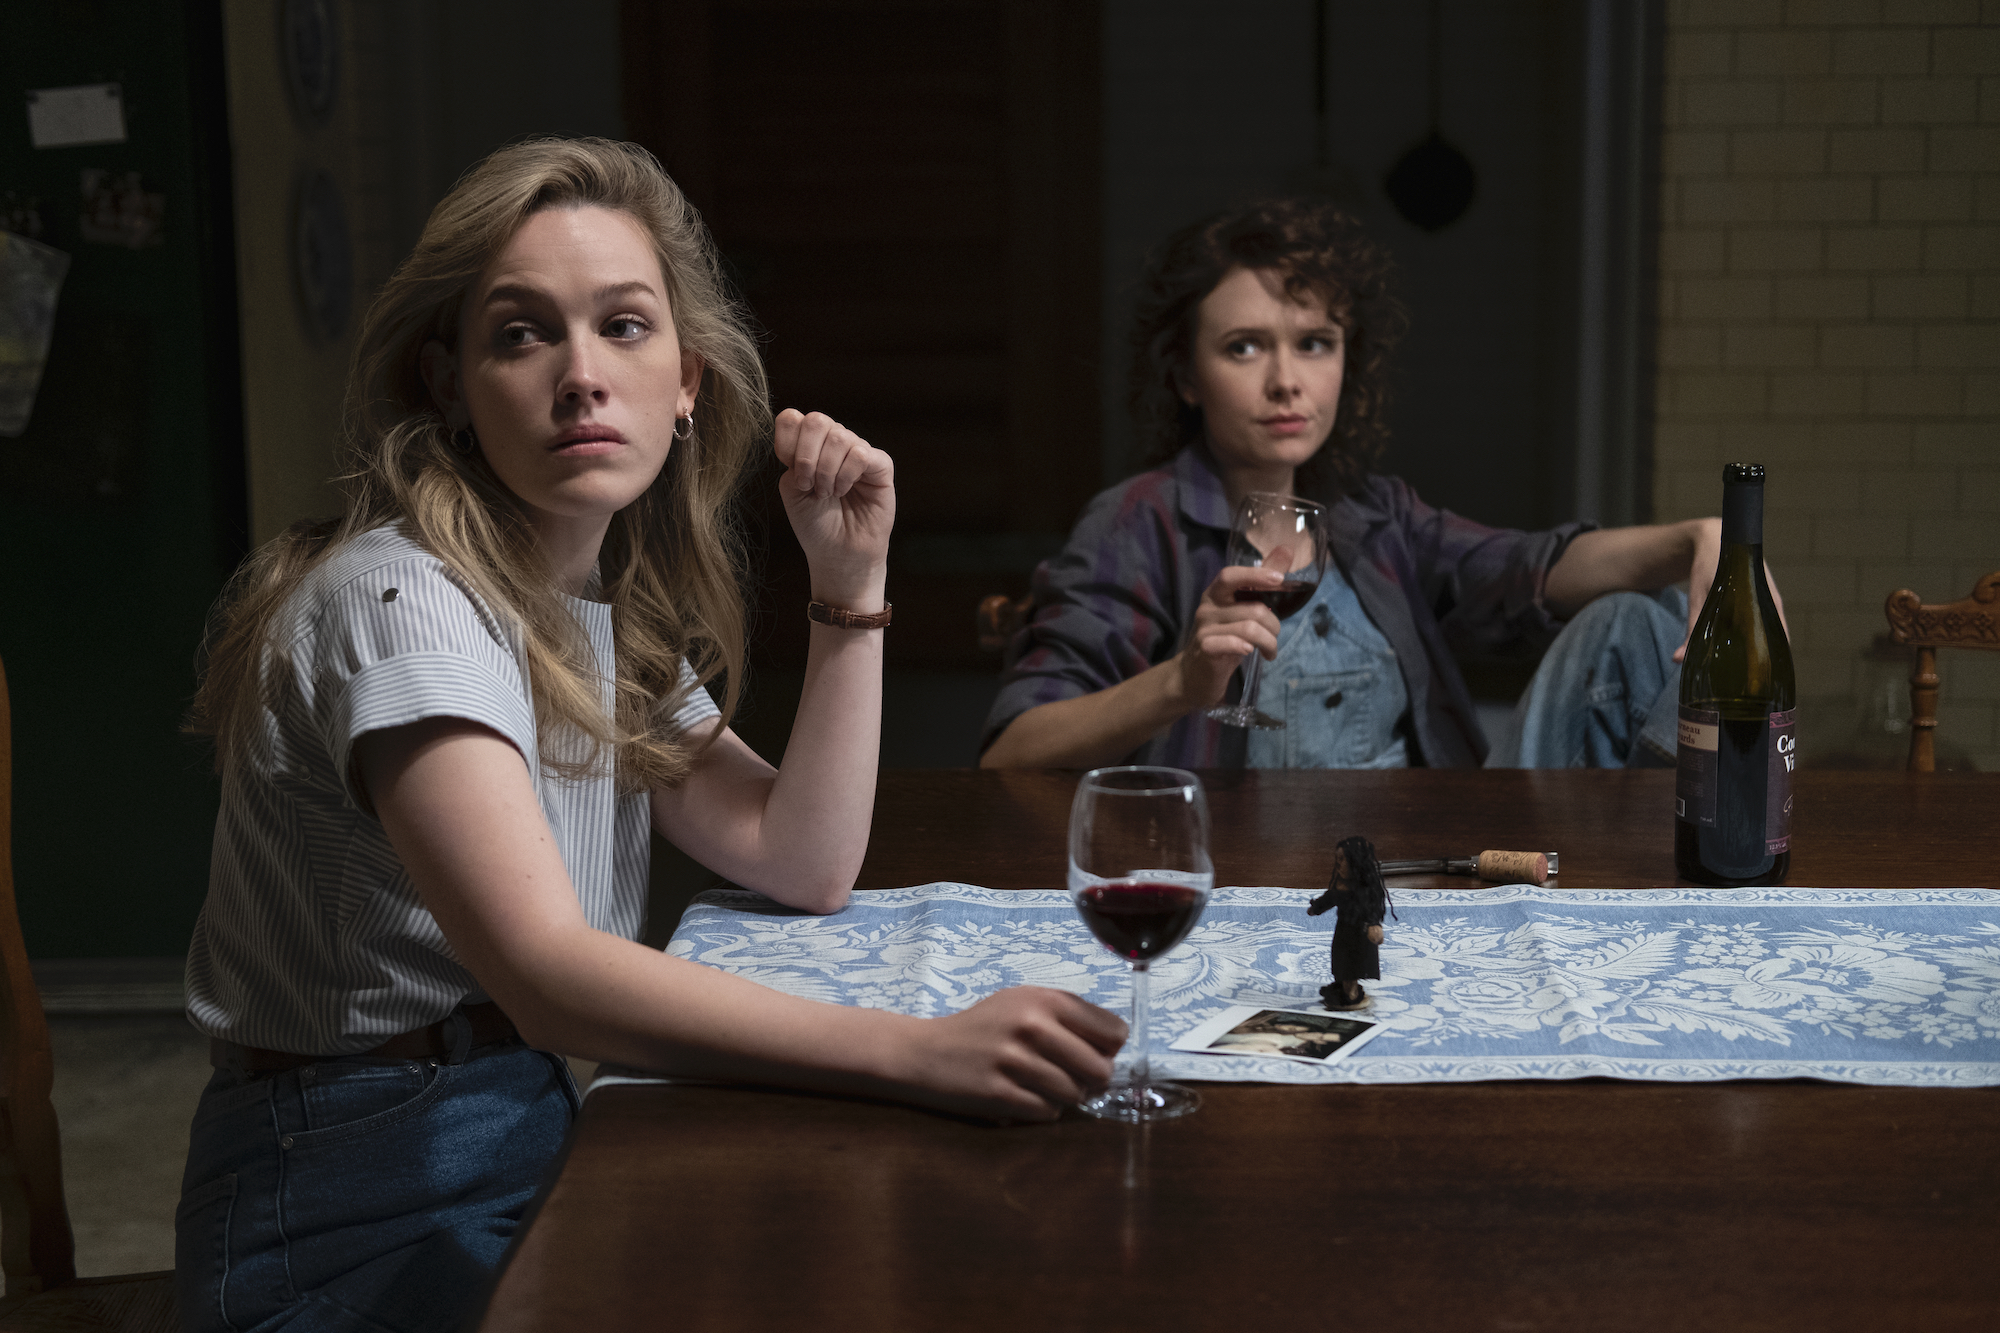 Dani (Victoria Pedretti) and Jamie (Amelia Eve) in 'THE HAUNTING OF BLY MANOR.'